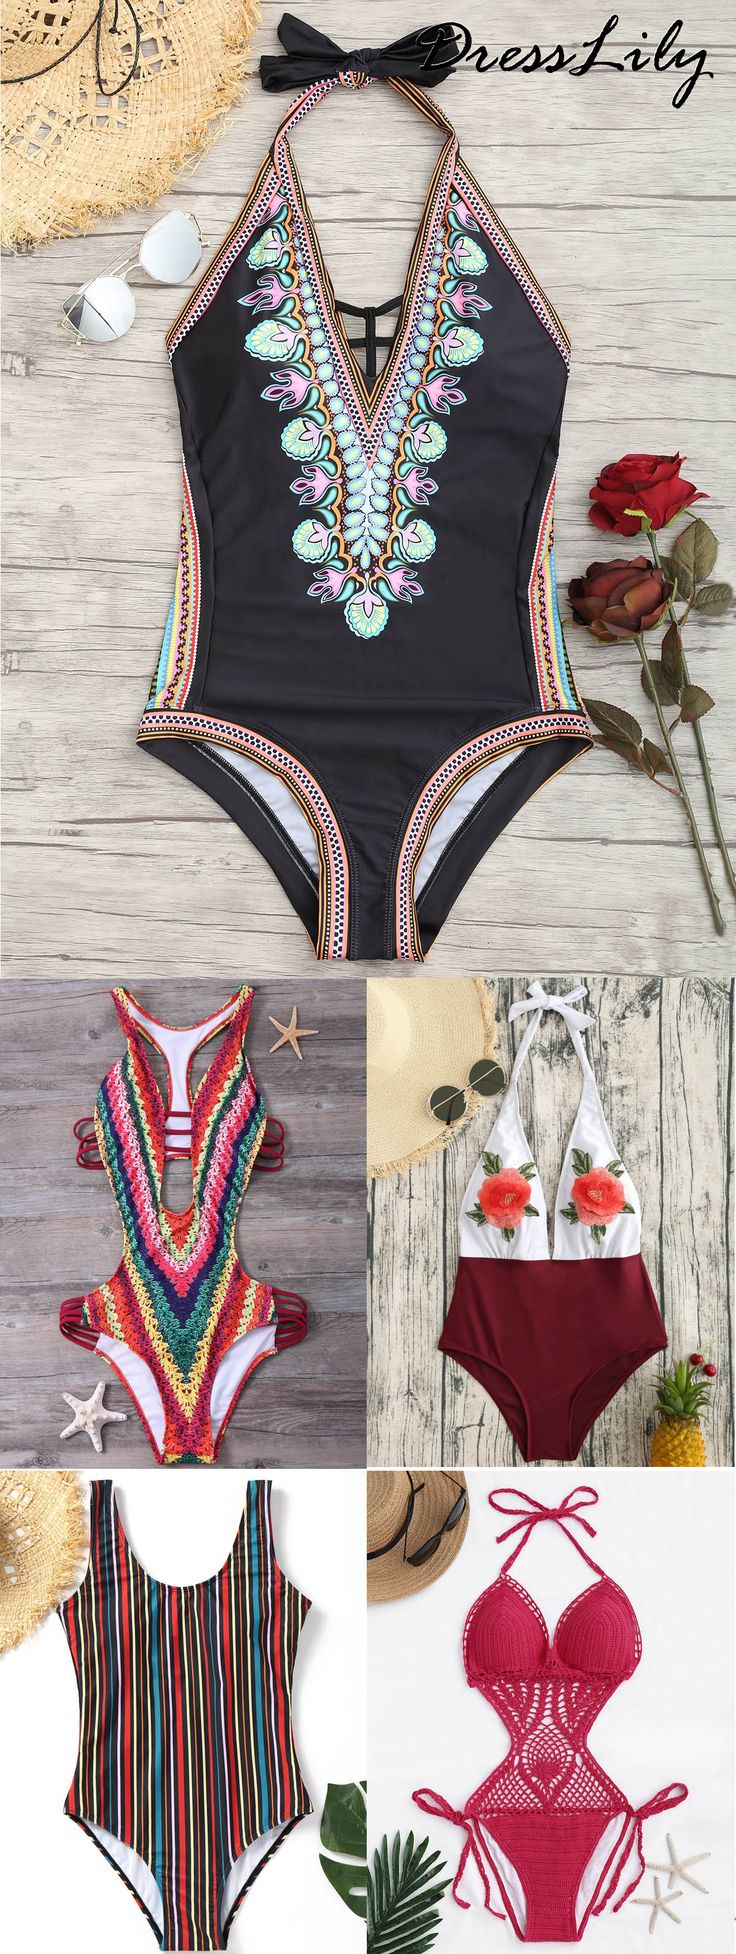 Buy the latest one piece swimsuit for women at cheapest price with high quality in dresslily.com | FREE SHIPMENT WORLDWIDE | dresslily,dresslily.com,dresslily swimsuit,dresslily swimwear,dresslily bathing suit, one piece, bikini,tankini, fakini,beach outfit, holiday style | #dresslily #swimsuit #onepiece #swimwear